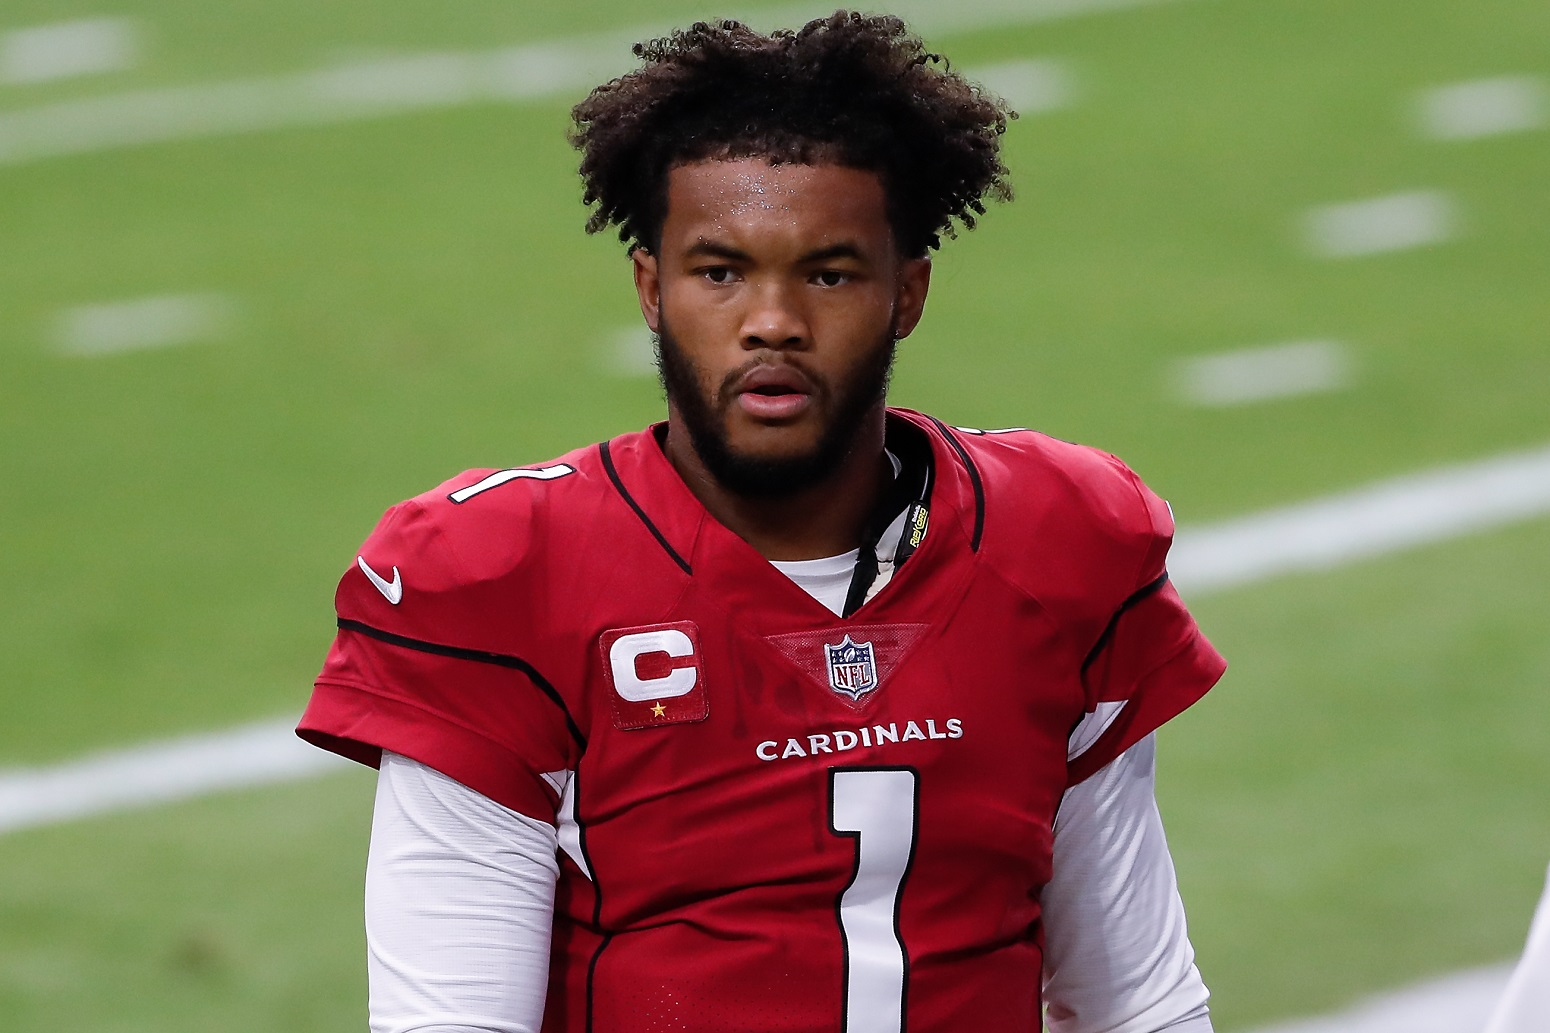 Kyler Murray Has Kept the Door Open For His First Love